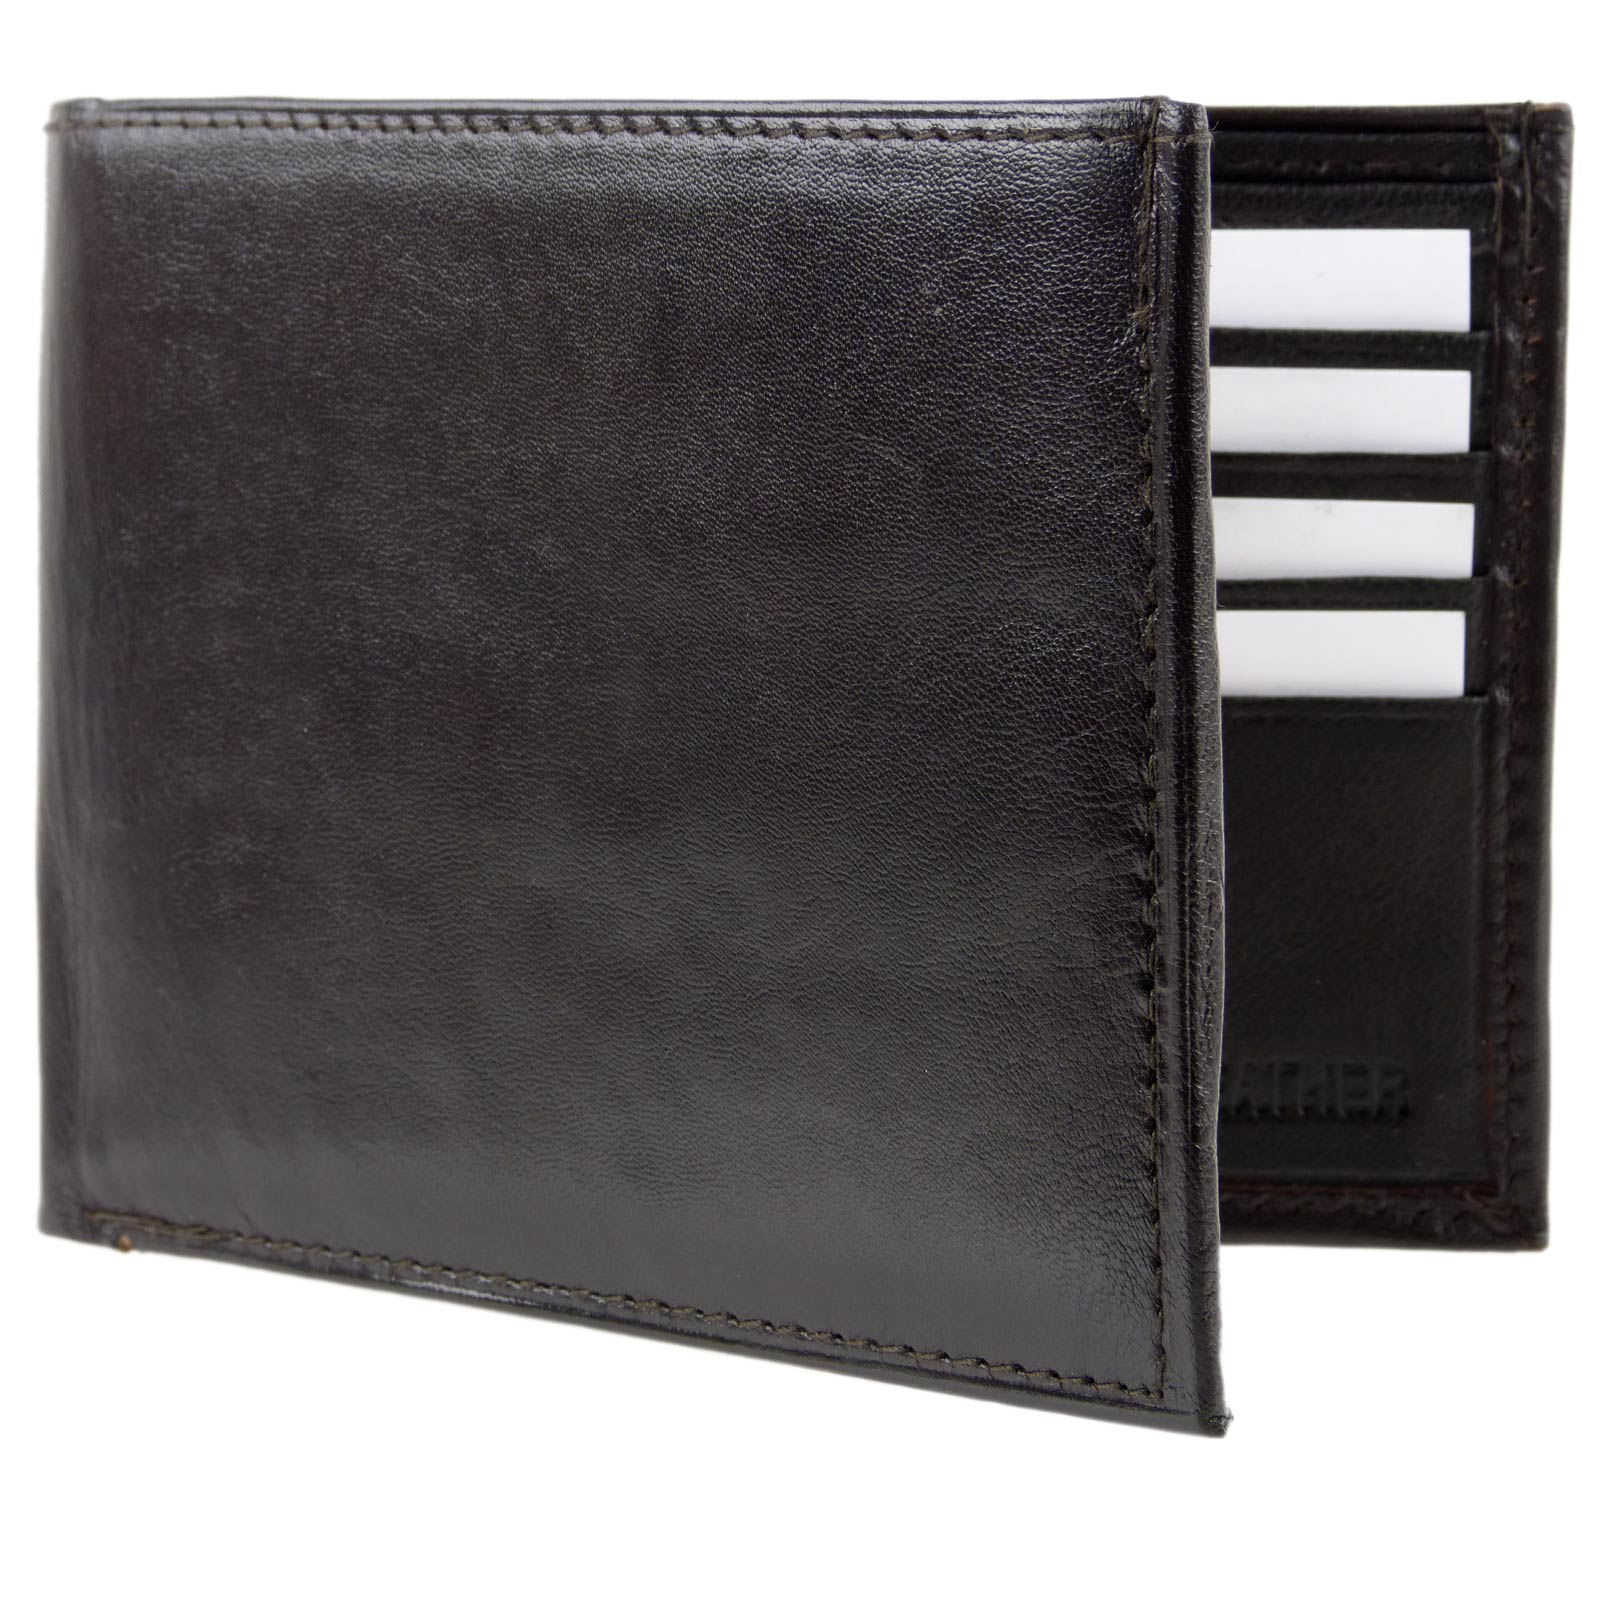 Mens-Quality-Soft-Nappa-LEATHER-Bi-Fold-Wallet-by-Oakridge thumbnail 10